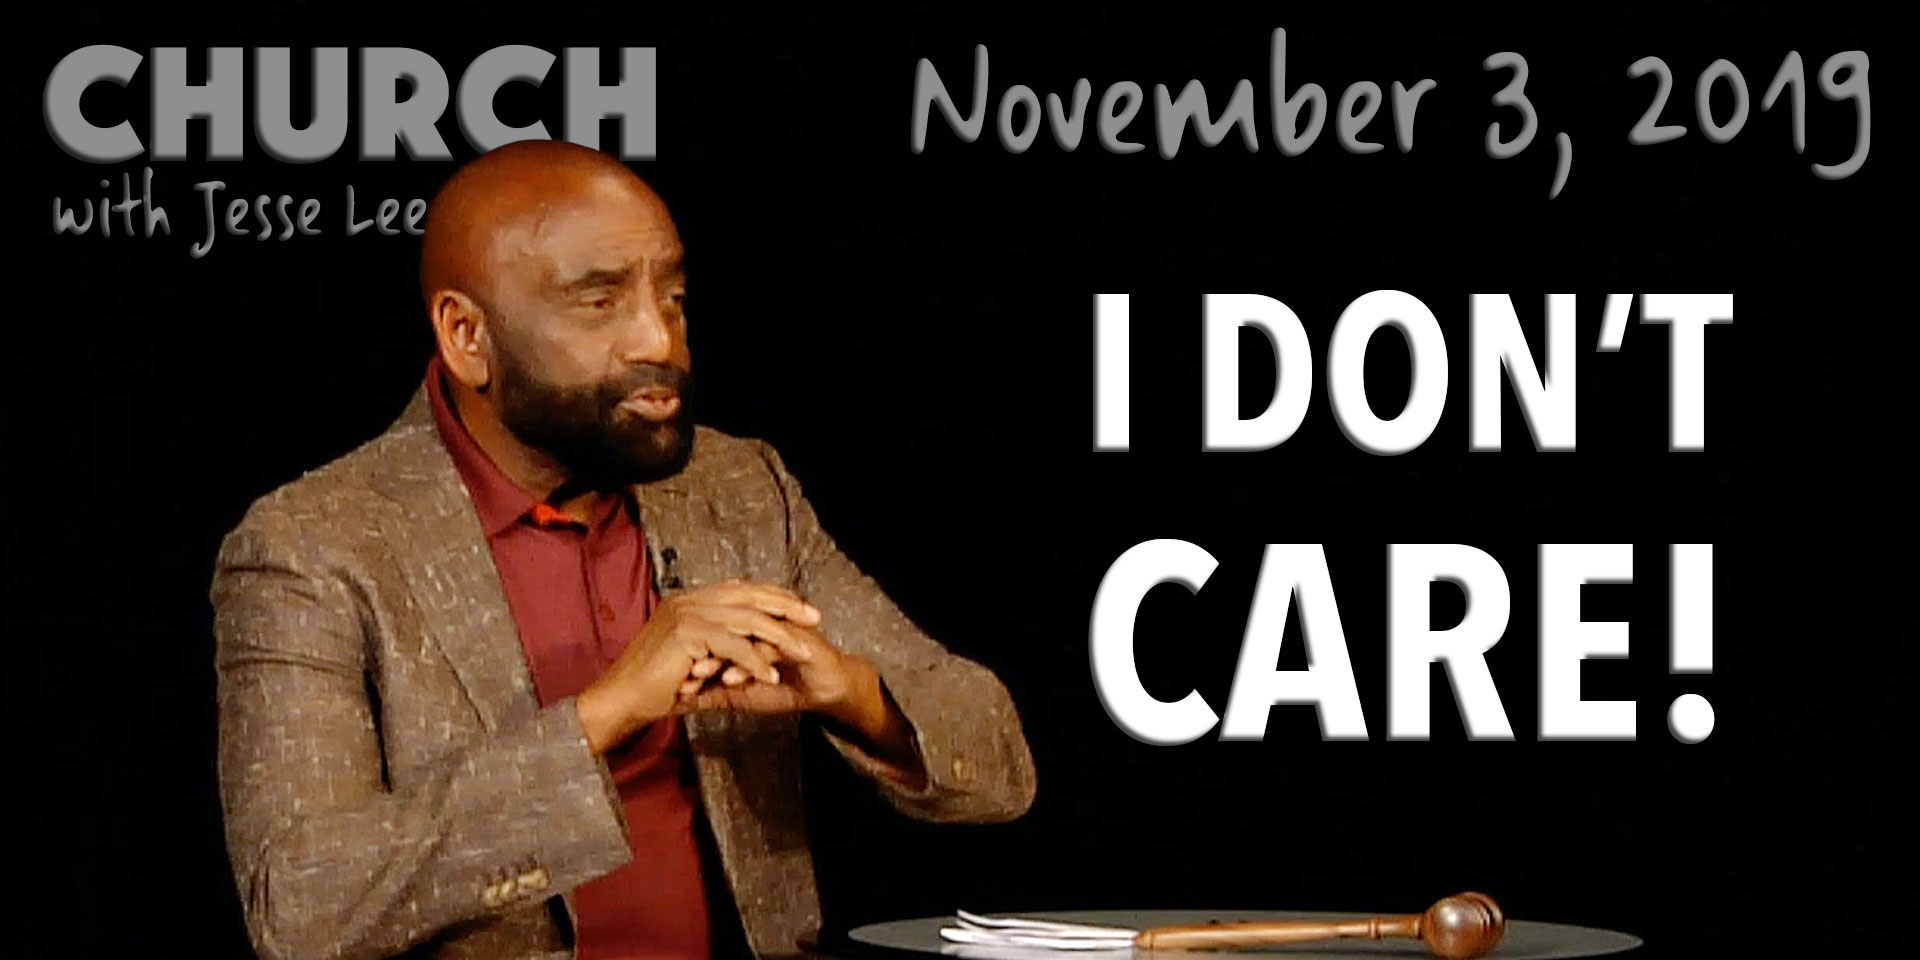 I Don't Care! (Church, Nov 3, 2019)